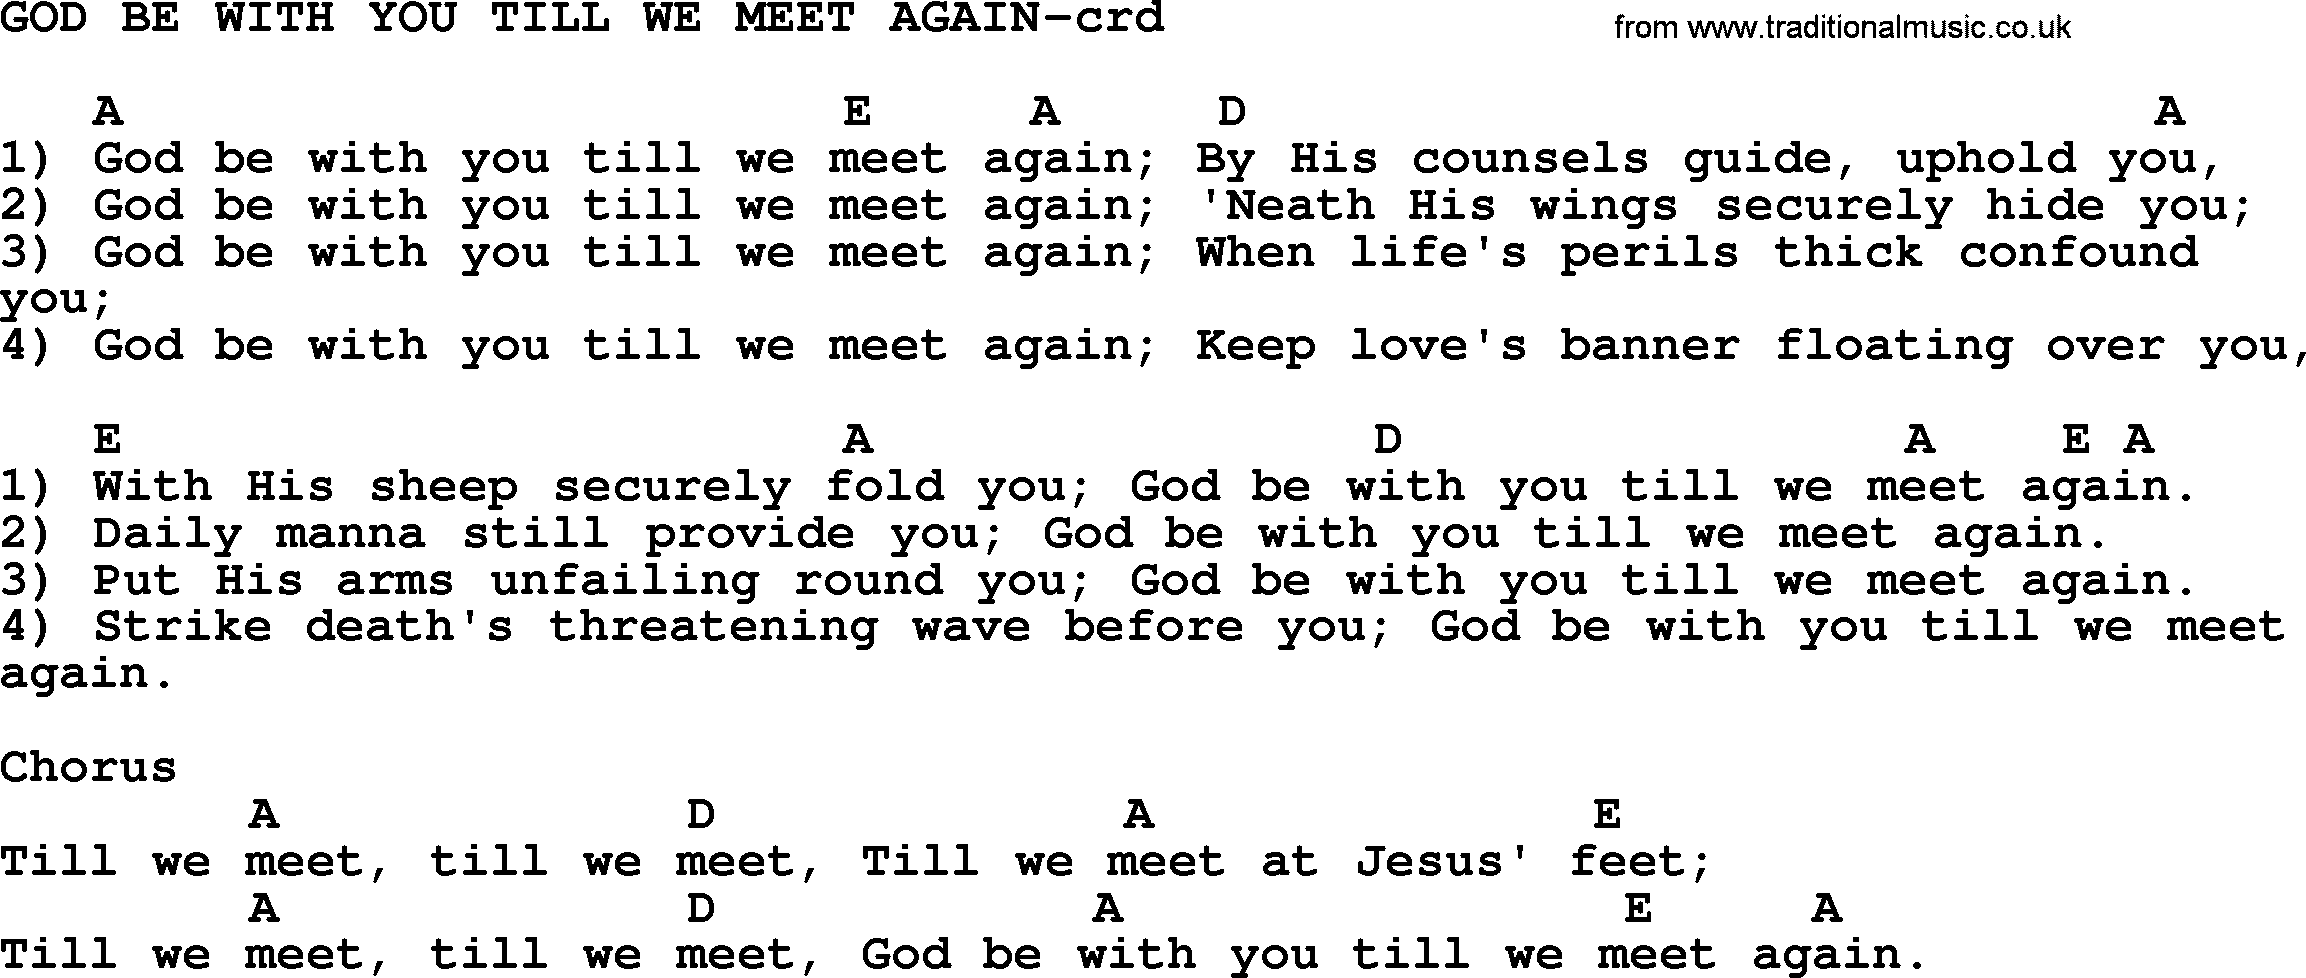 teitur to meet you chords and lyrics